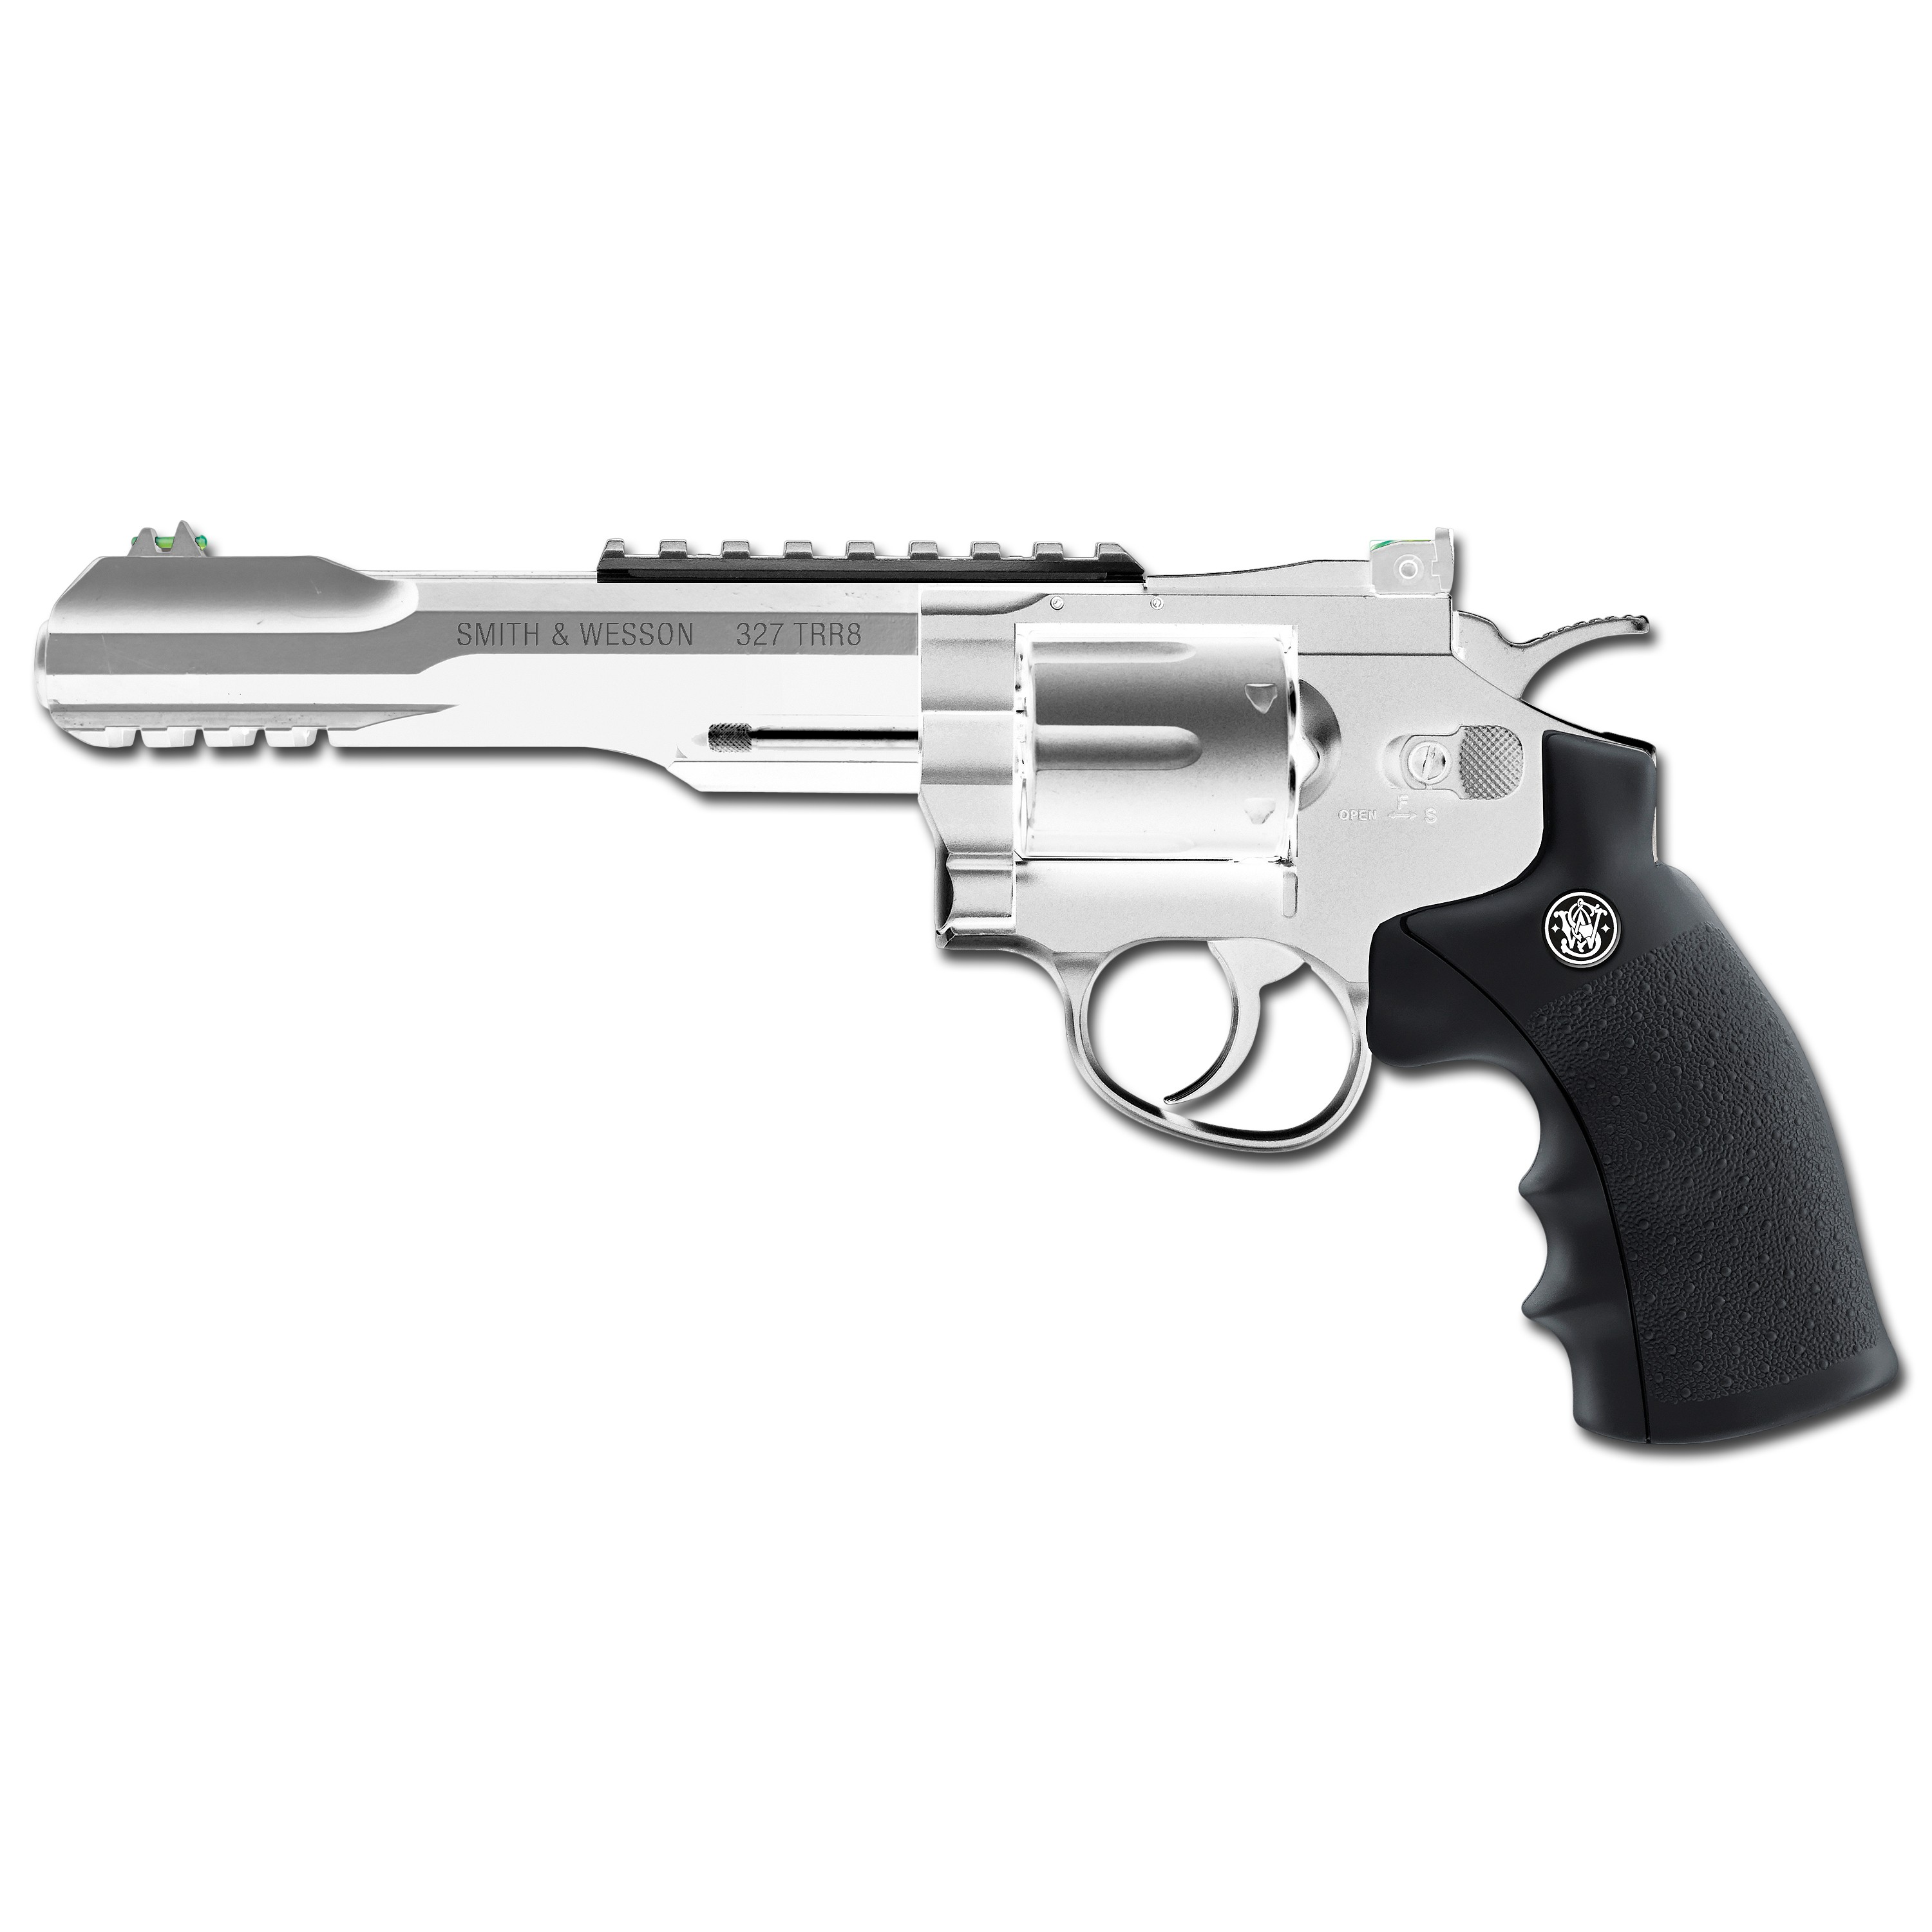 Revolver Smith Wesson 327 TRR8 nickel-plated